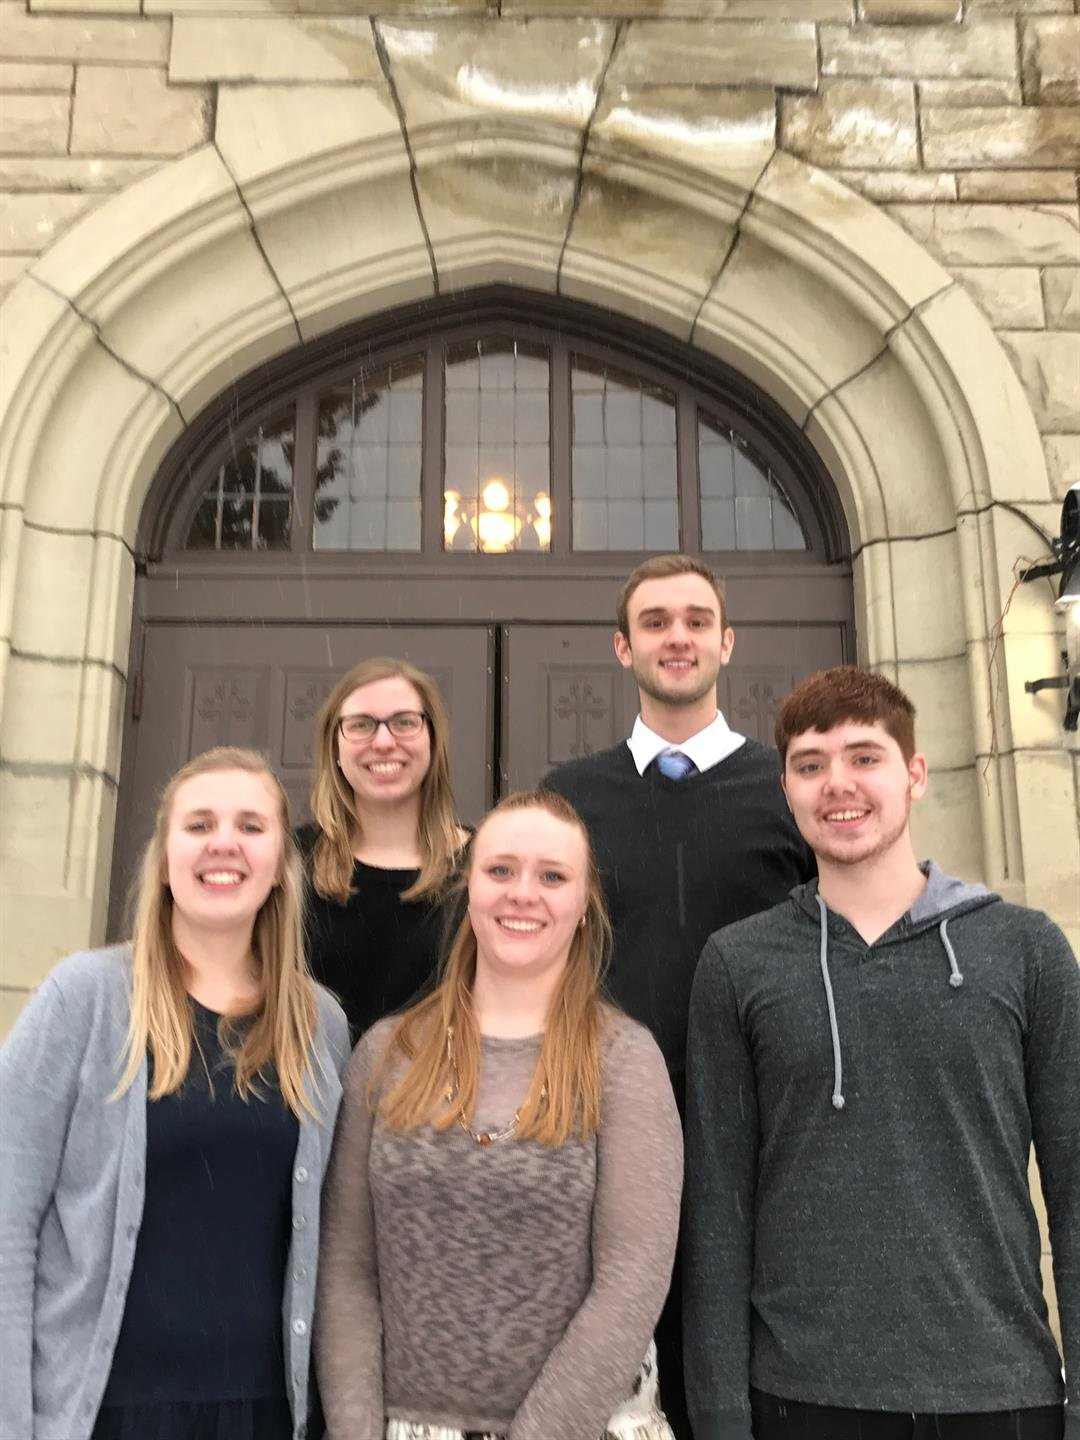 L to R: Kayleigh Griffith, Paige Schladetsch, Gretchen Carlson, Mitchell Harmon, Trevor Hunnes. (Photo courtesy of Rocky Mountain College)